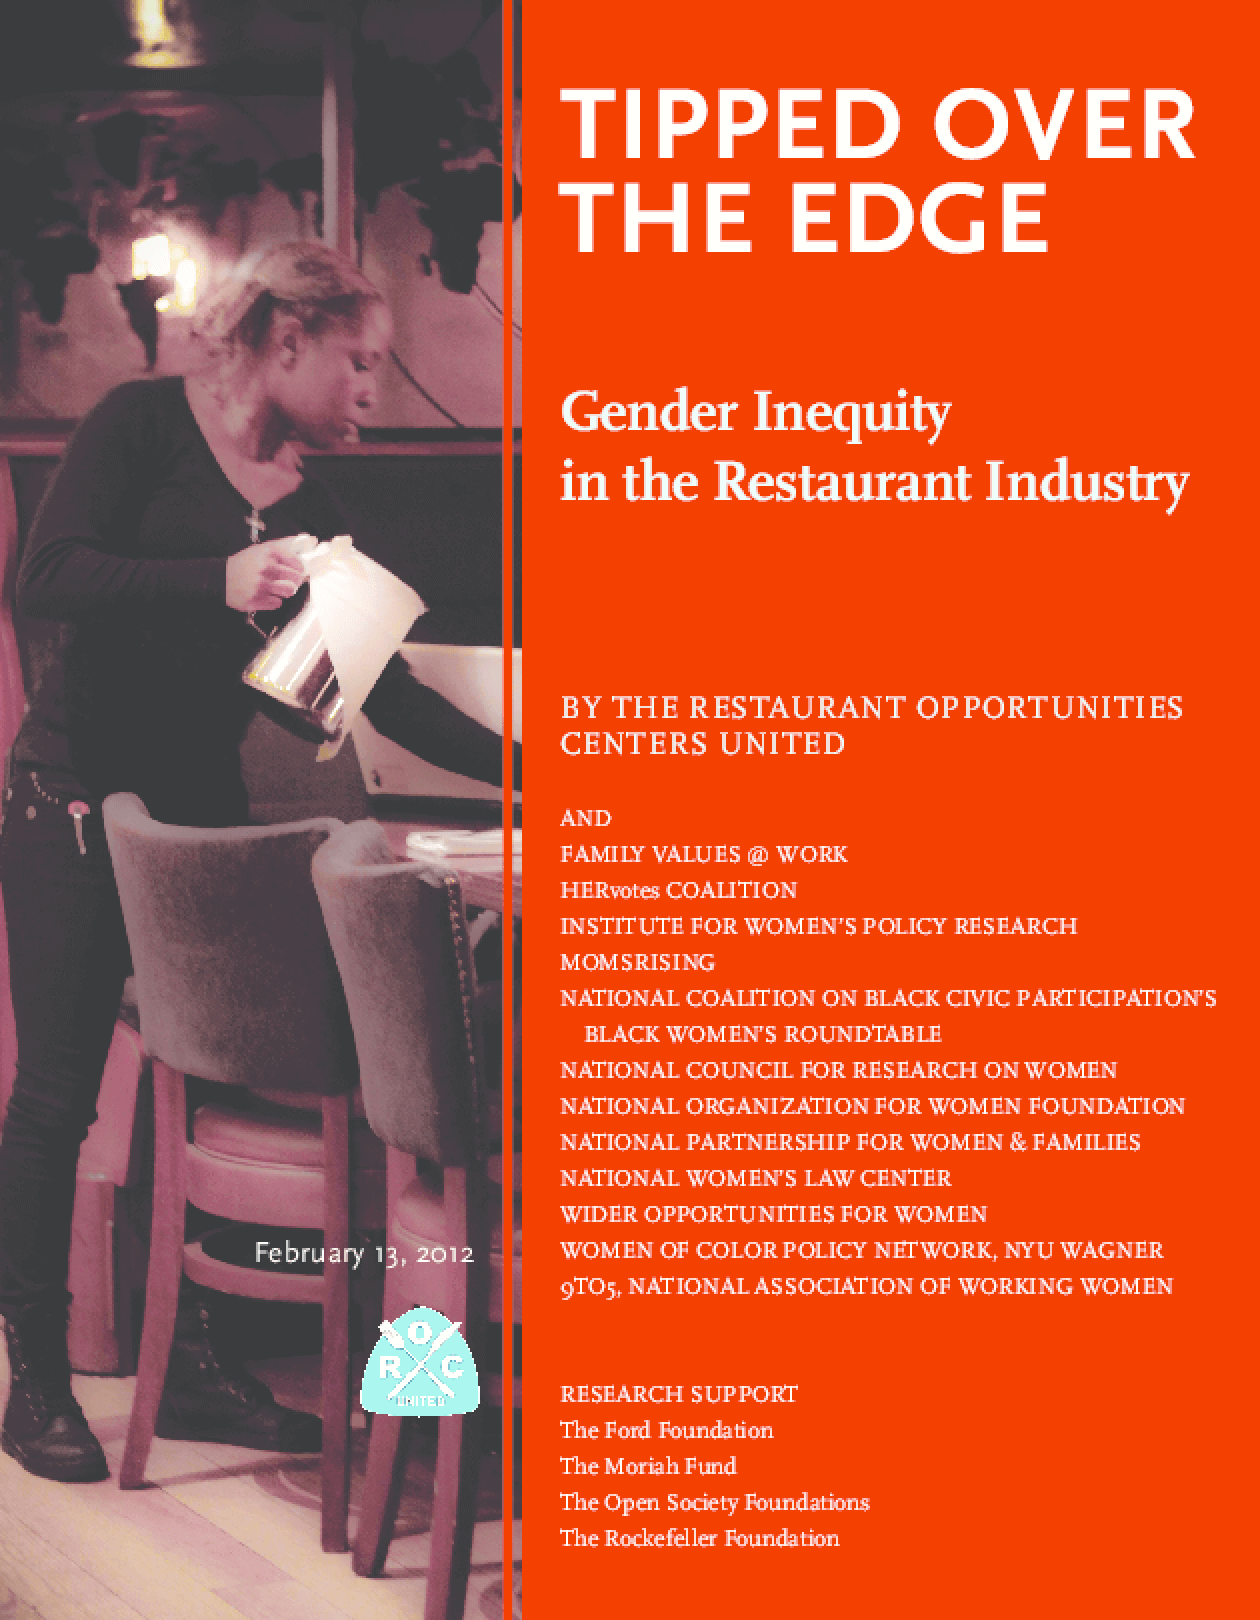 Tipped Over the Edge: Gender Inequity in the Restaurant Industry